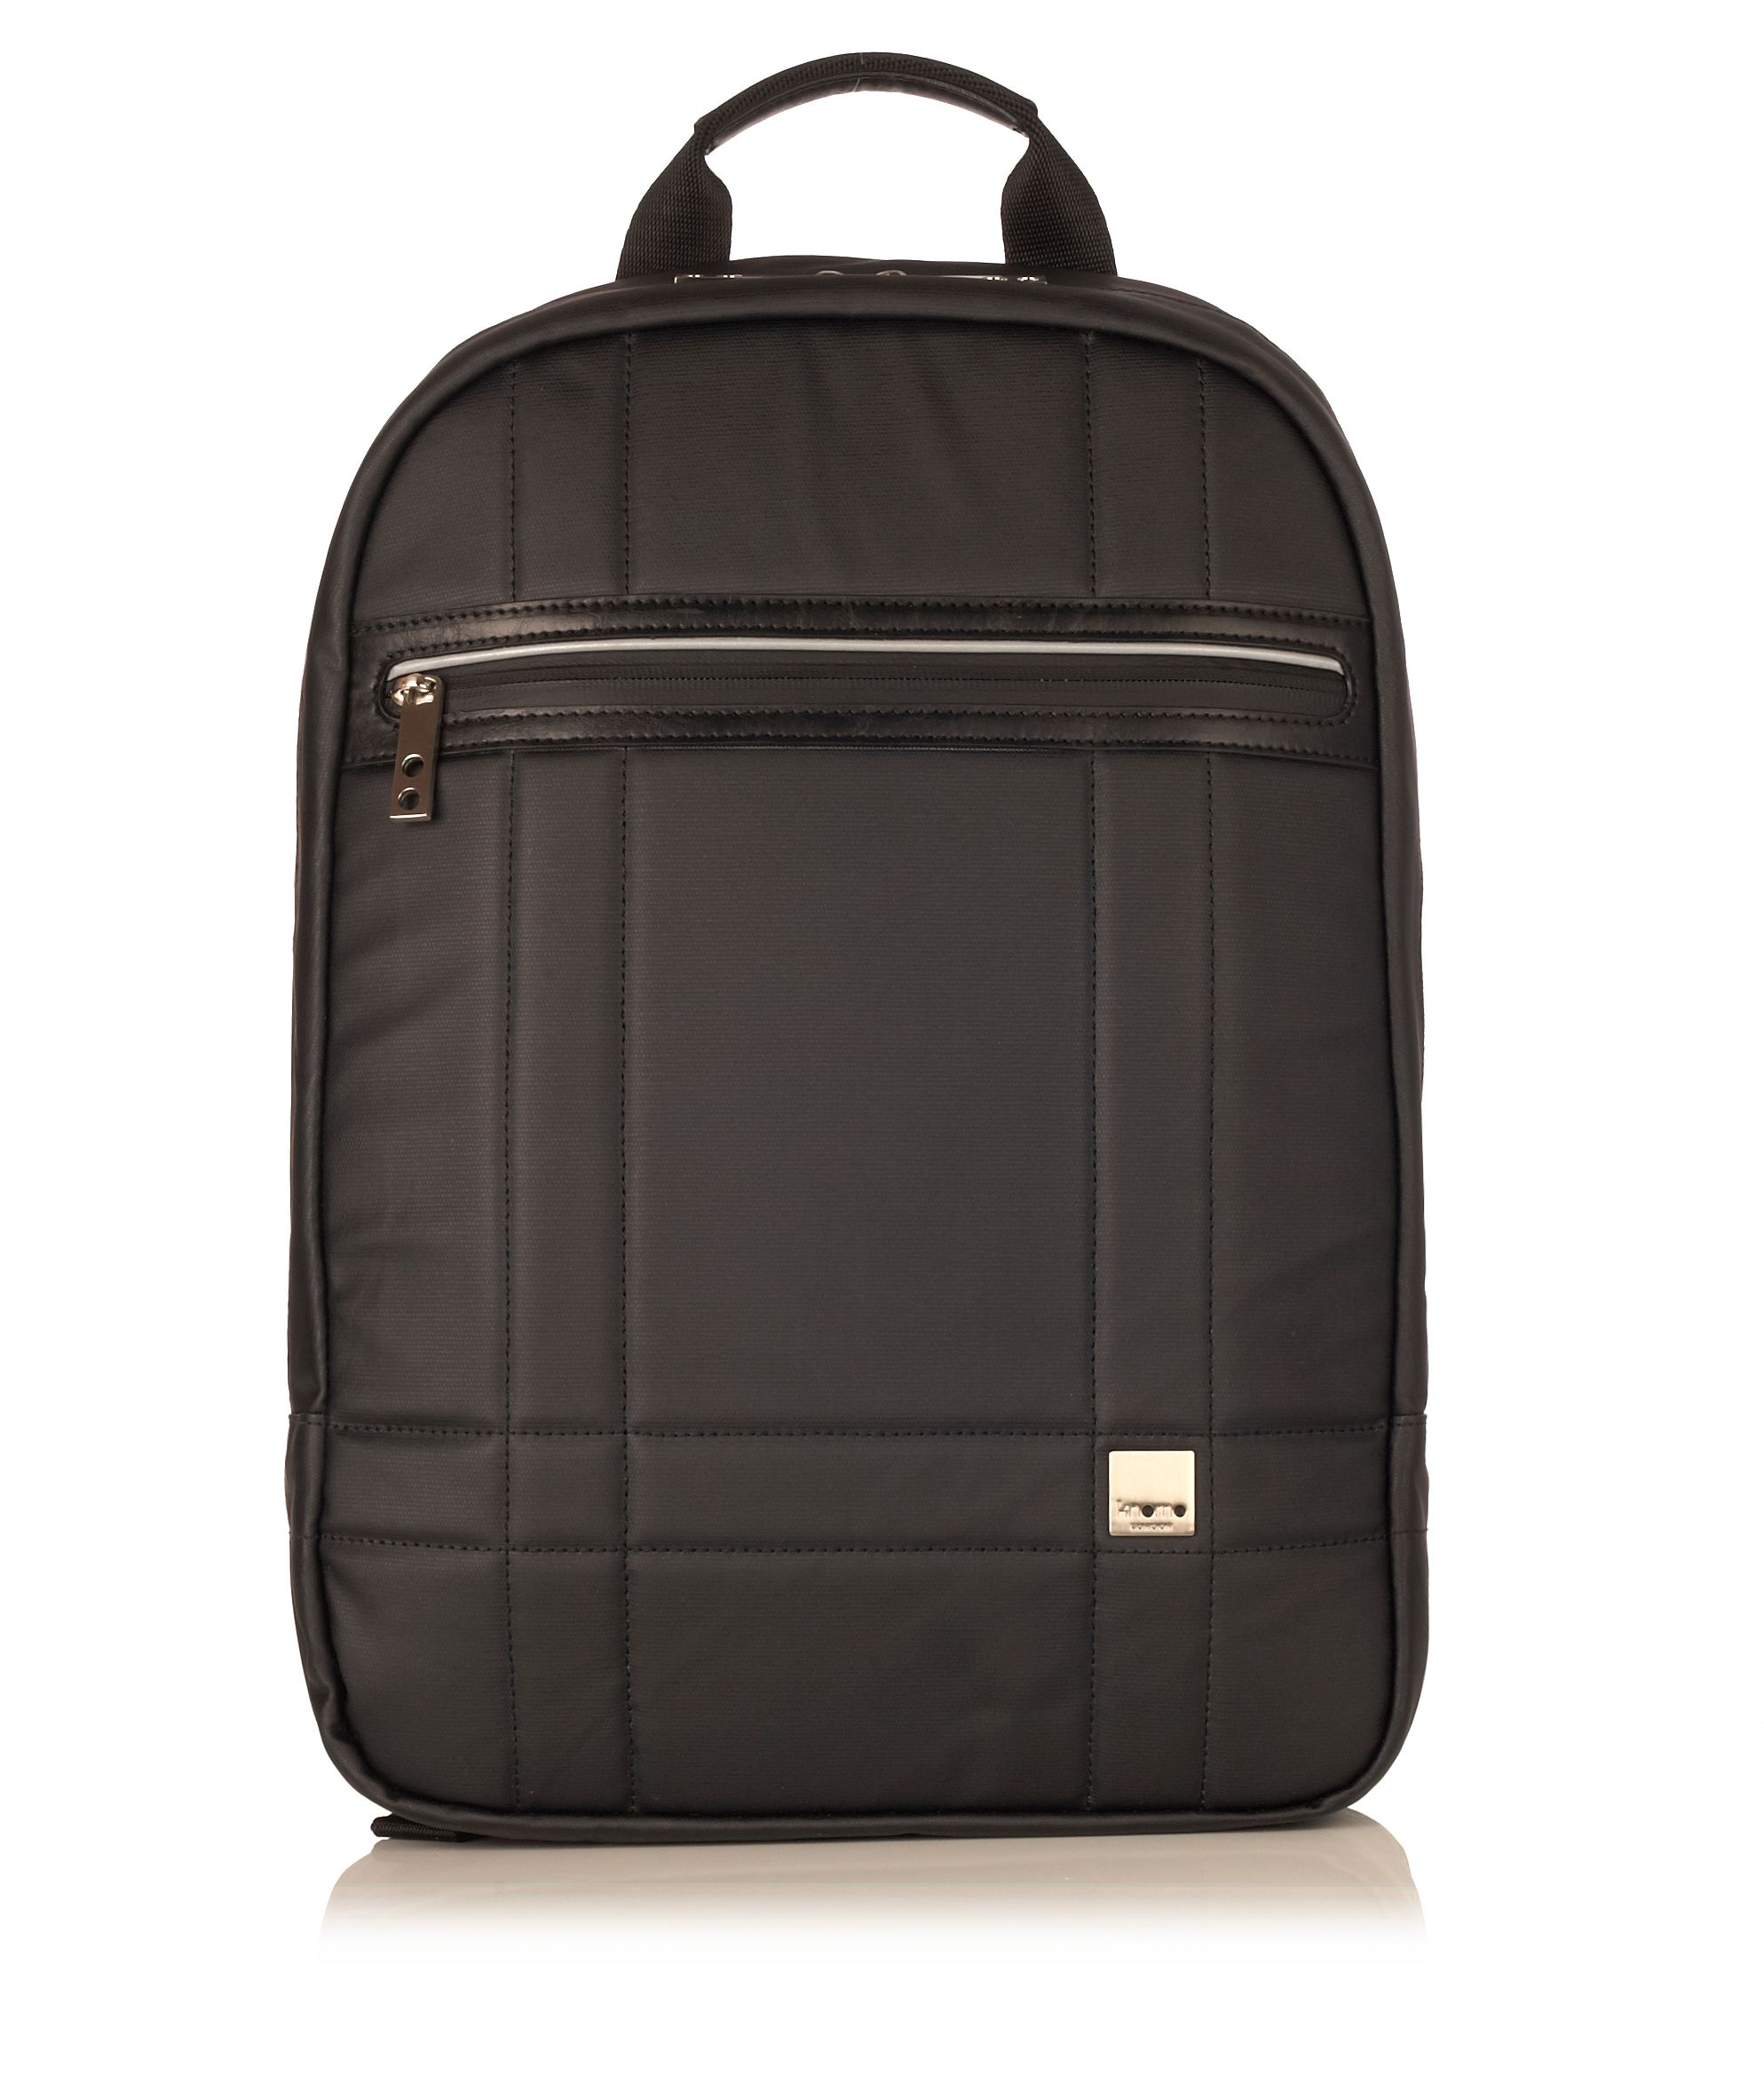 Fargo black backpack